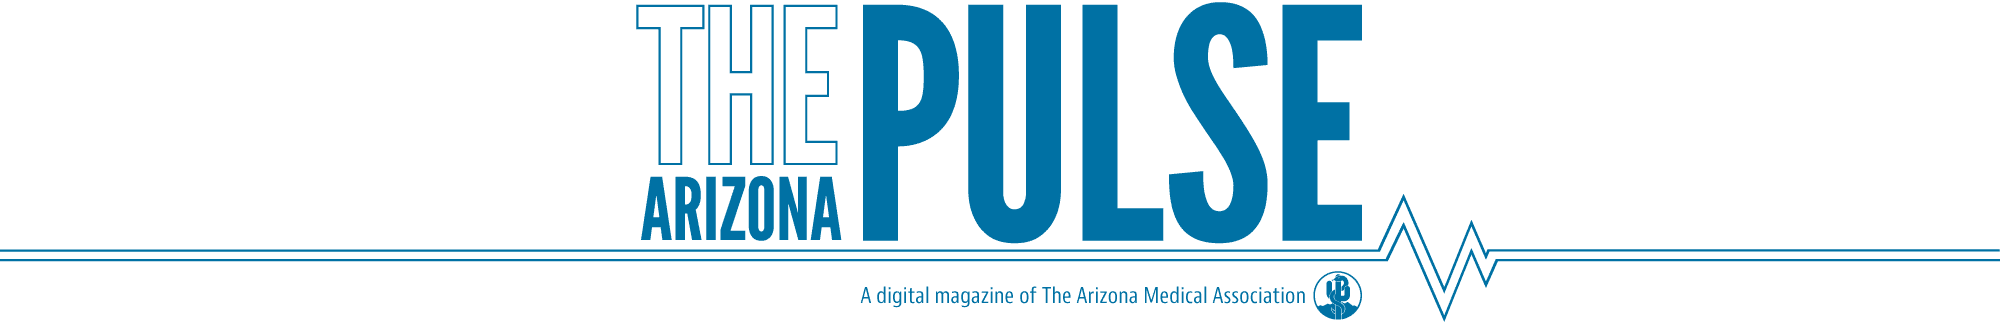 The Arizona Pulse